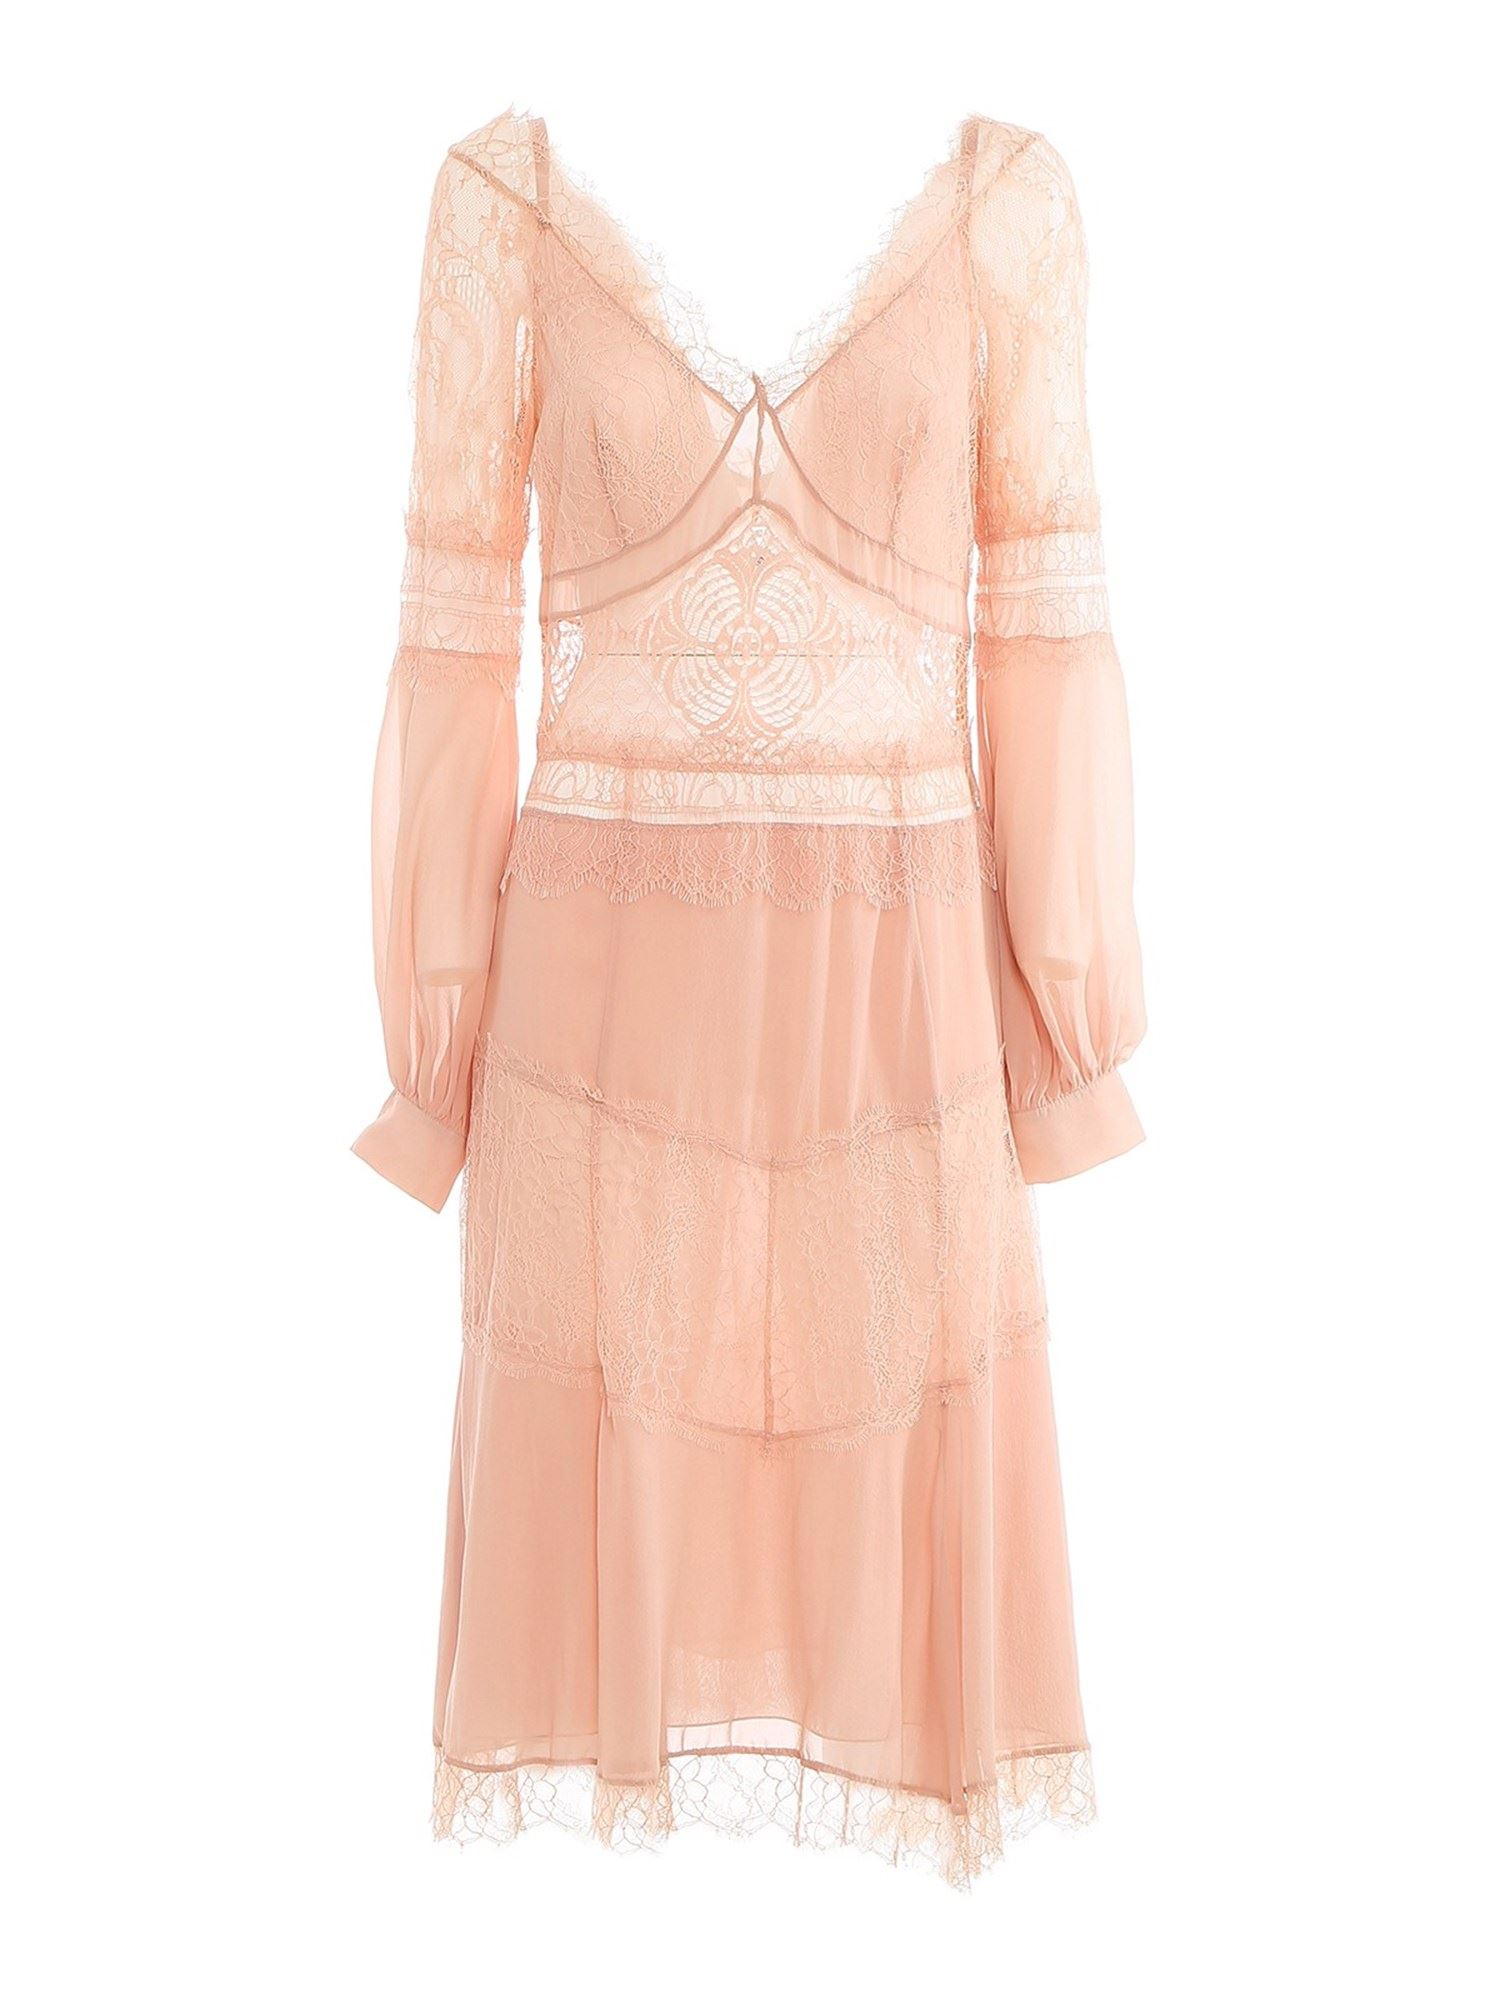 Amen CRÊPE DE CHINE AND LACE DRESS IN PINK